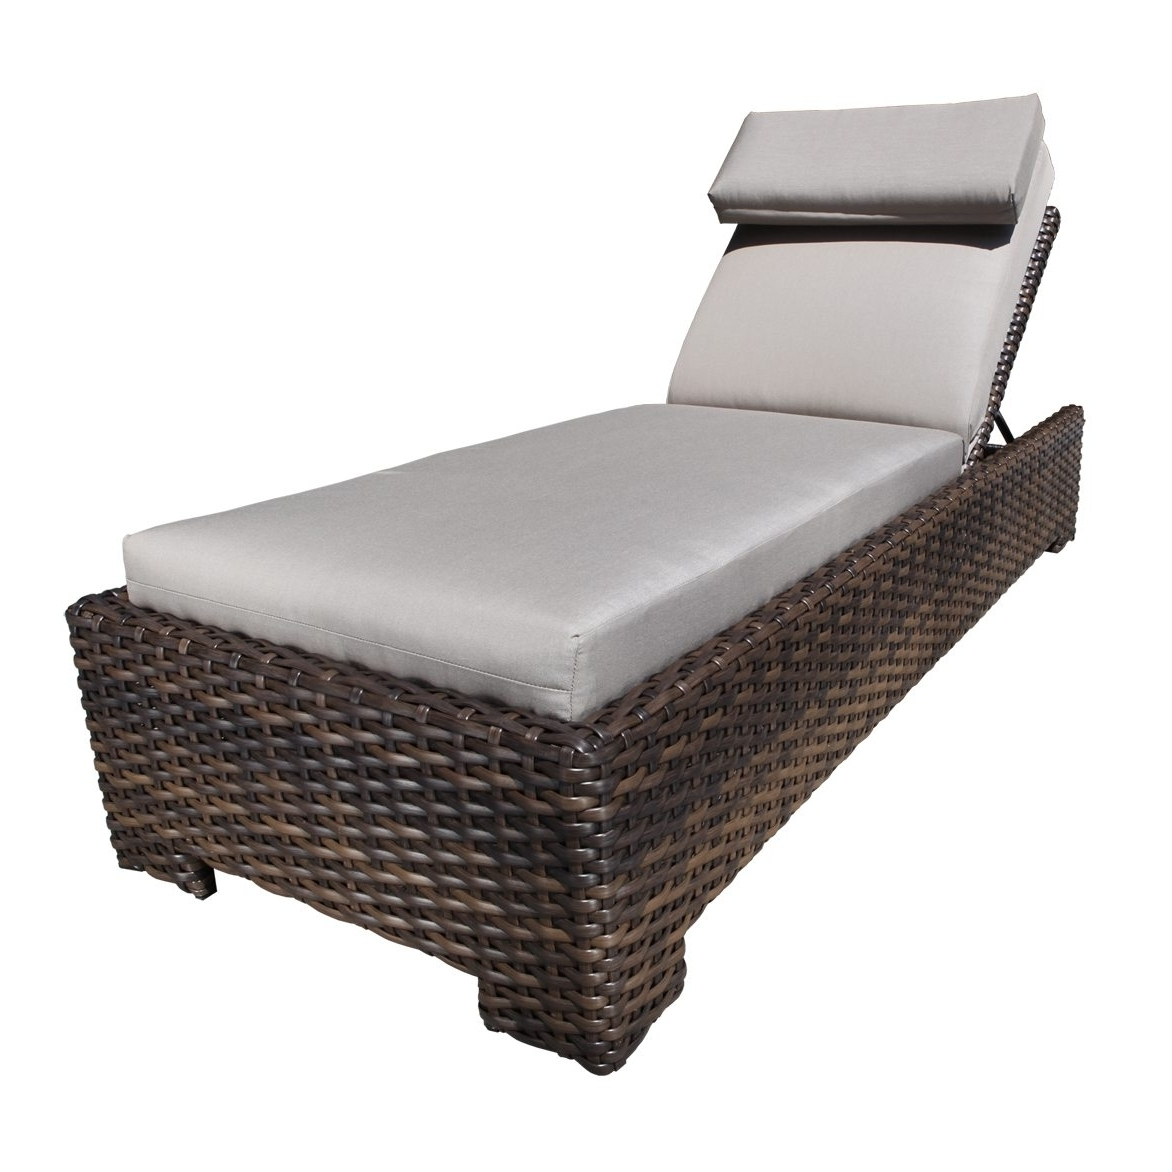 Famous Gorgeous Patio Chaise Lounge Chair Lounge Outdoor 16 Exterior Inside Outdoor Pool Chaise Lounge Chairs (View 5 of 15)